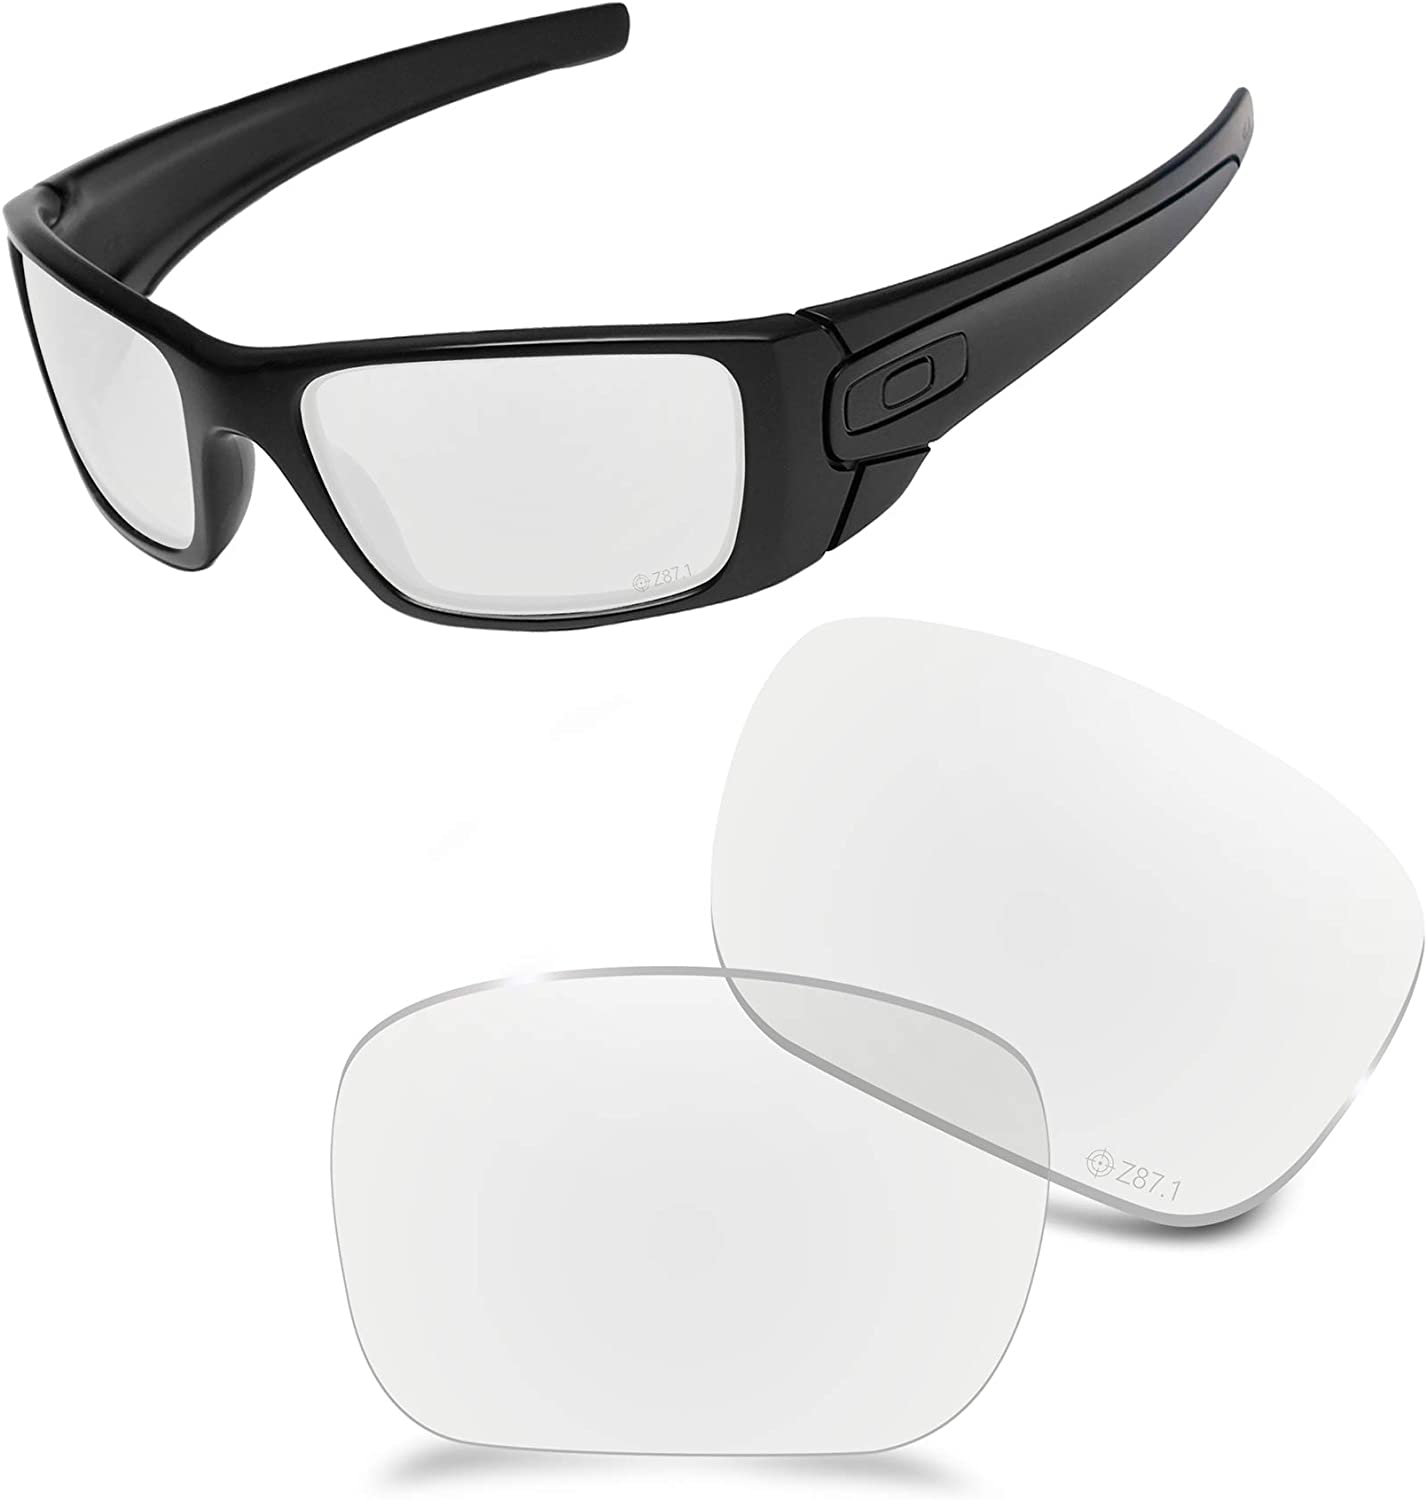 AOZAN New arrival ANSI Z87.1 Replacement Lenses Fuel with Compatible Oakley Superior